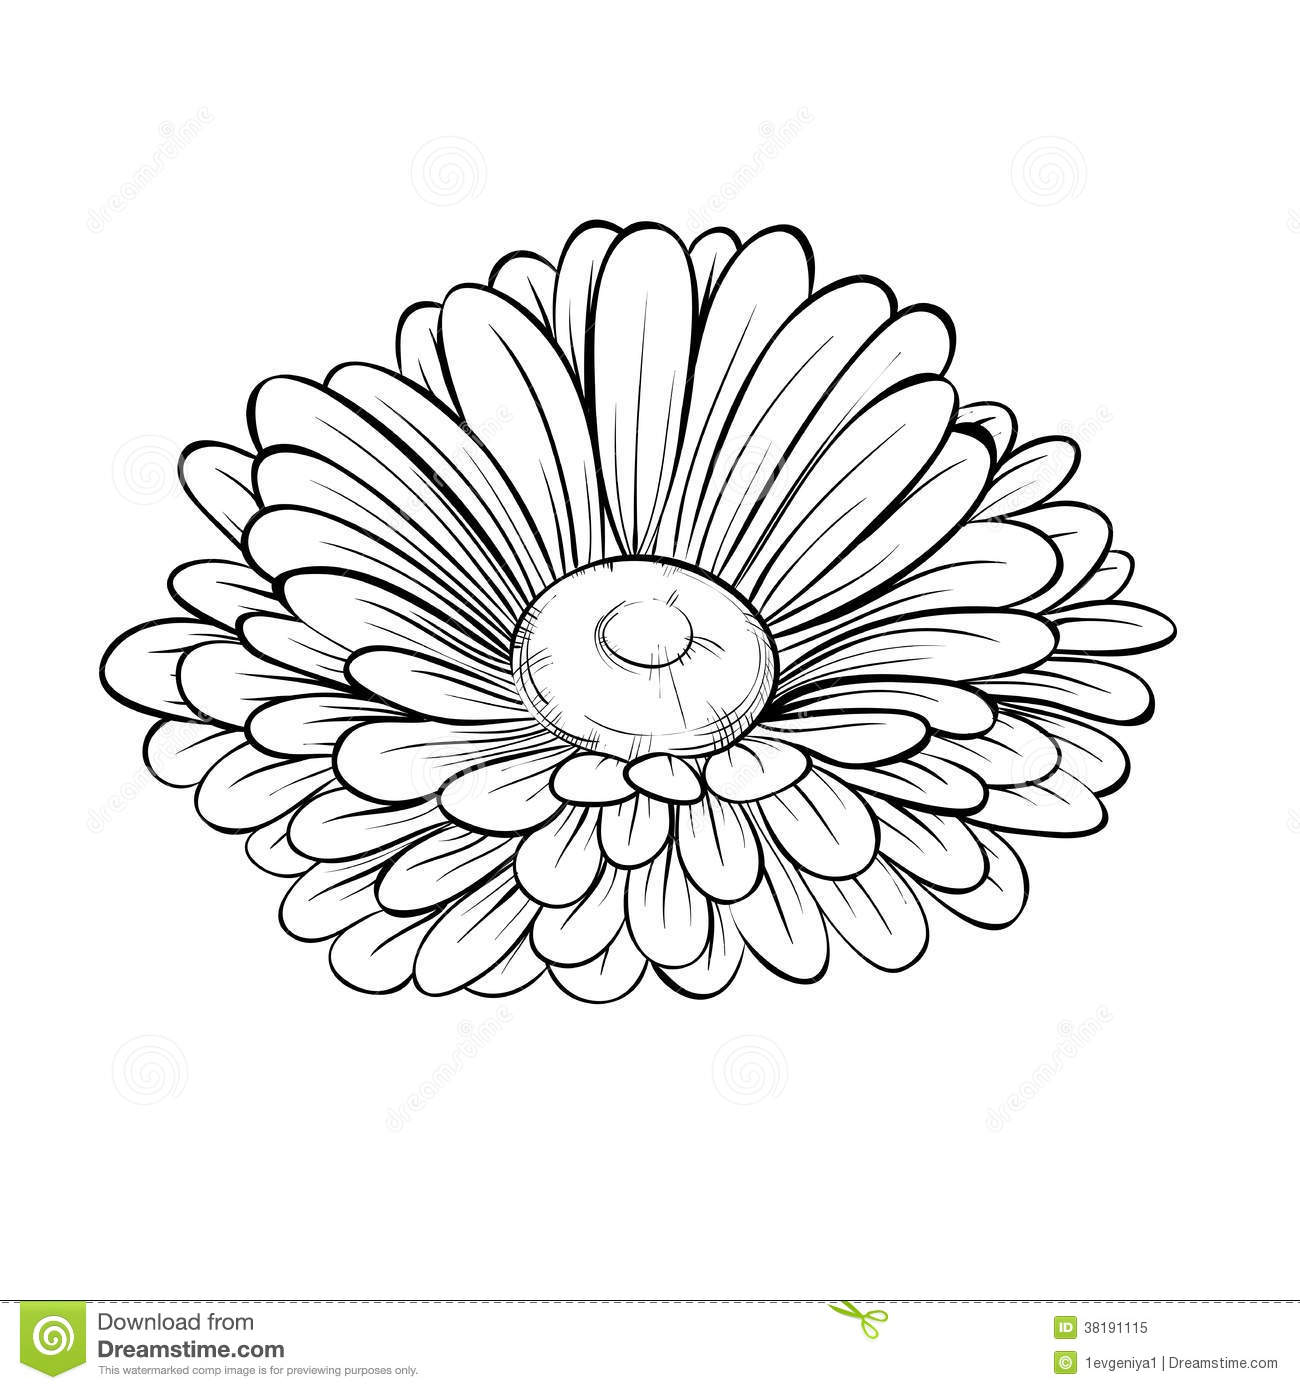 Daisy Tattoo Outline: Beautiful Monochrome Black And White Daisy Flower Isolated